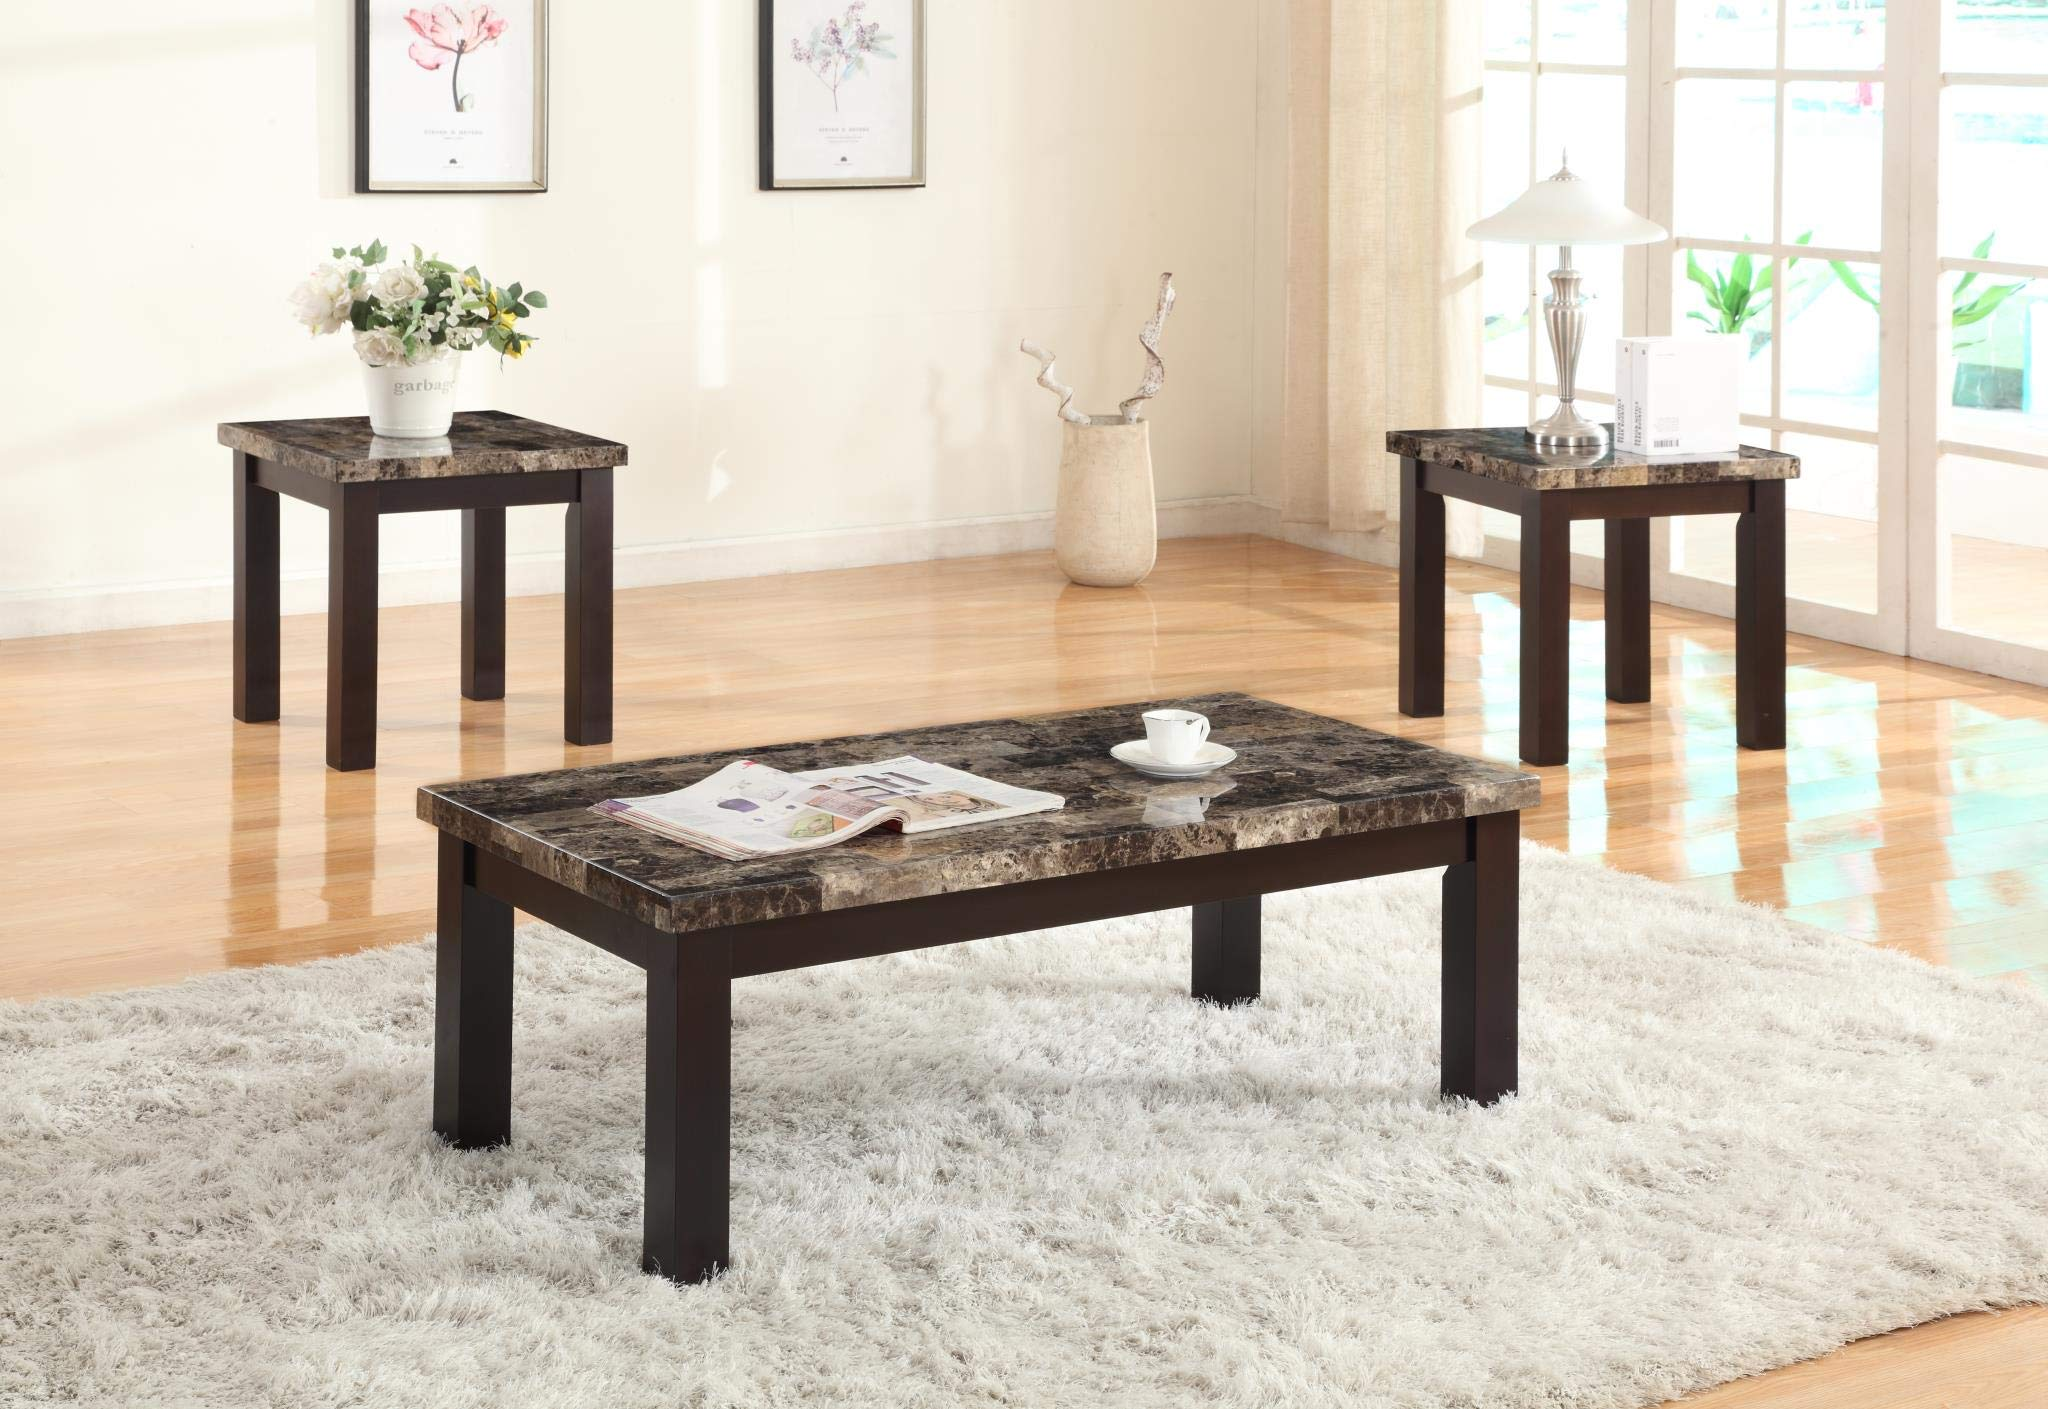 GTU Furntiure 3Pc Faux Marble Top Espresso Rectangular Living Room Coffee & End Table Set